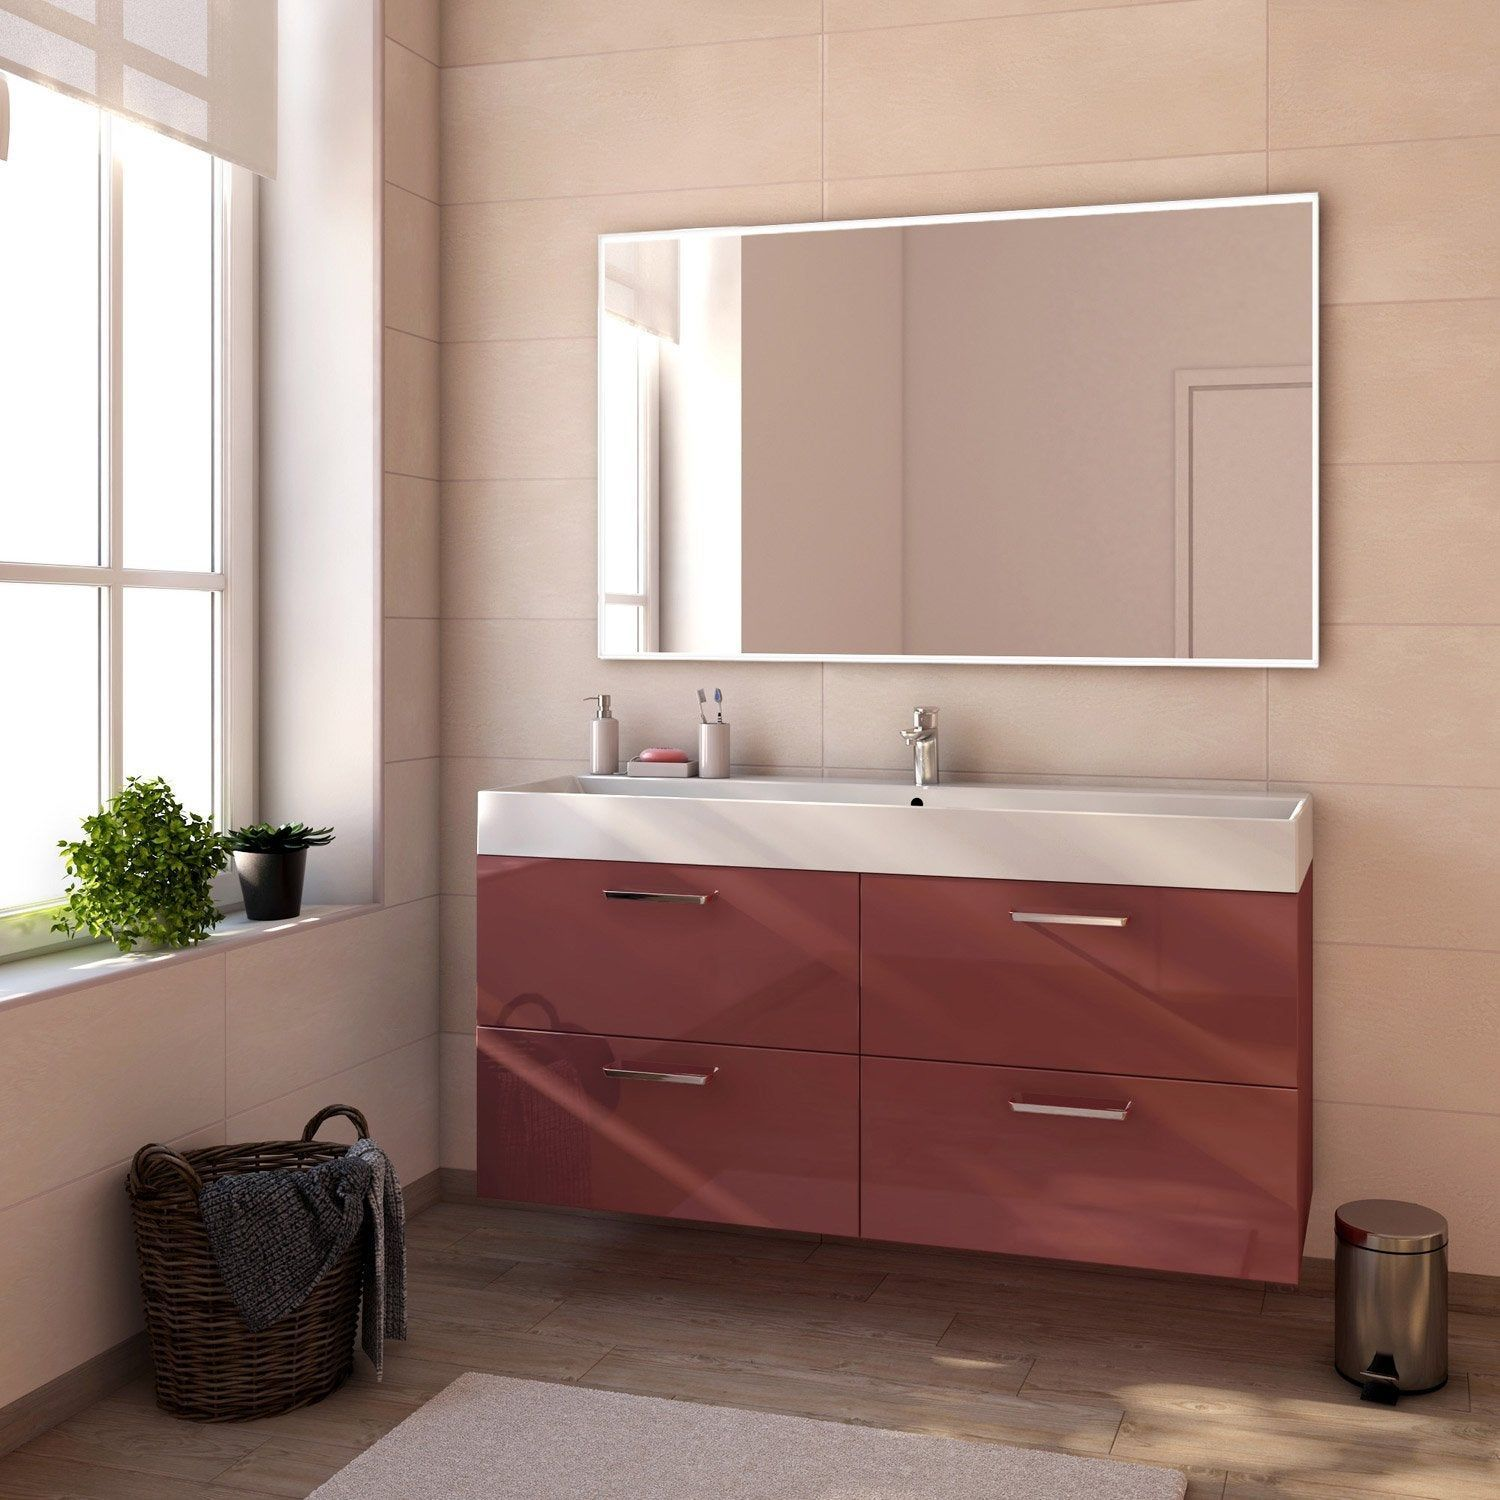 Meuble De Salle De Bains Neo Line Sensea Scandinavian Bathroom Bathrooms Remodel Sensea